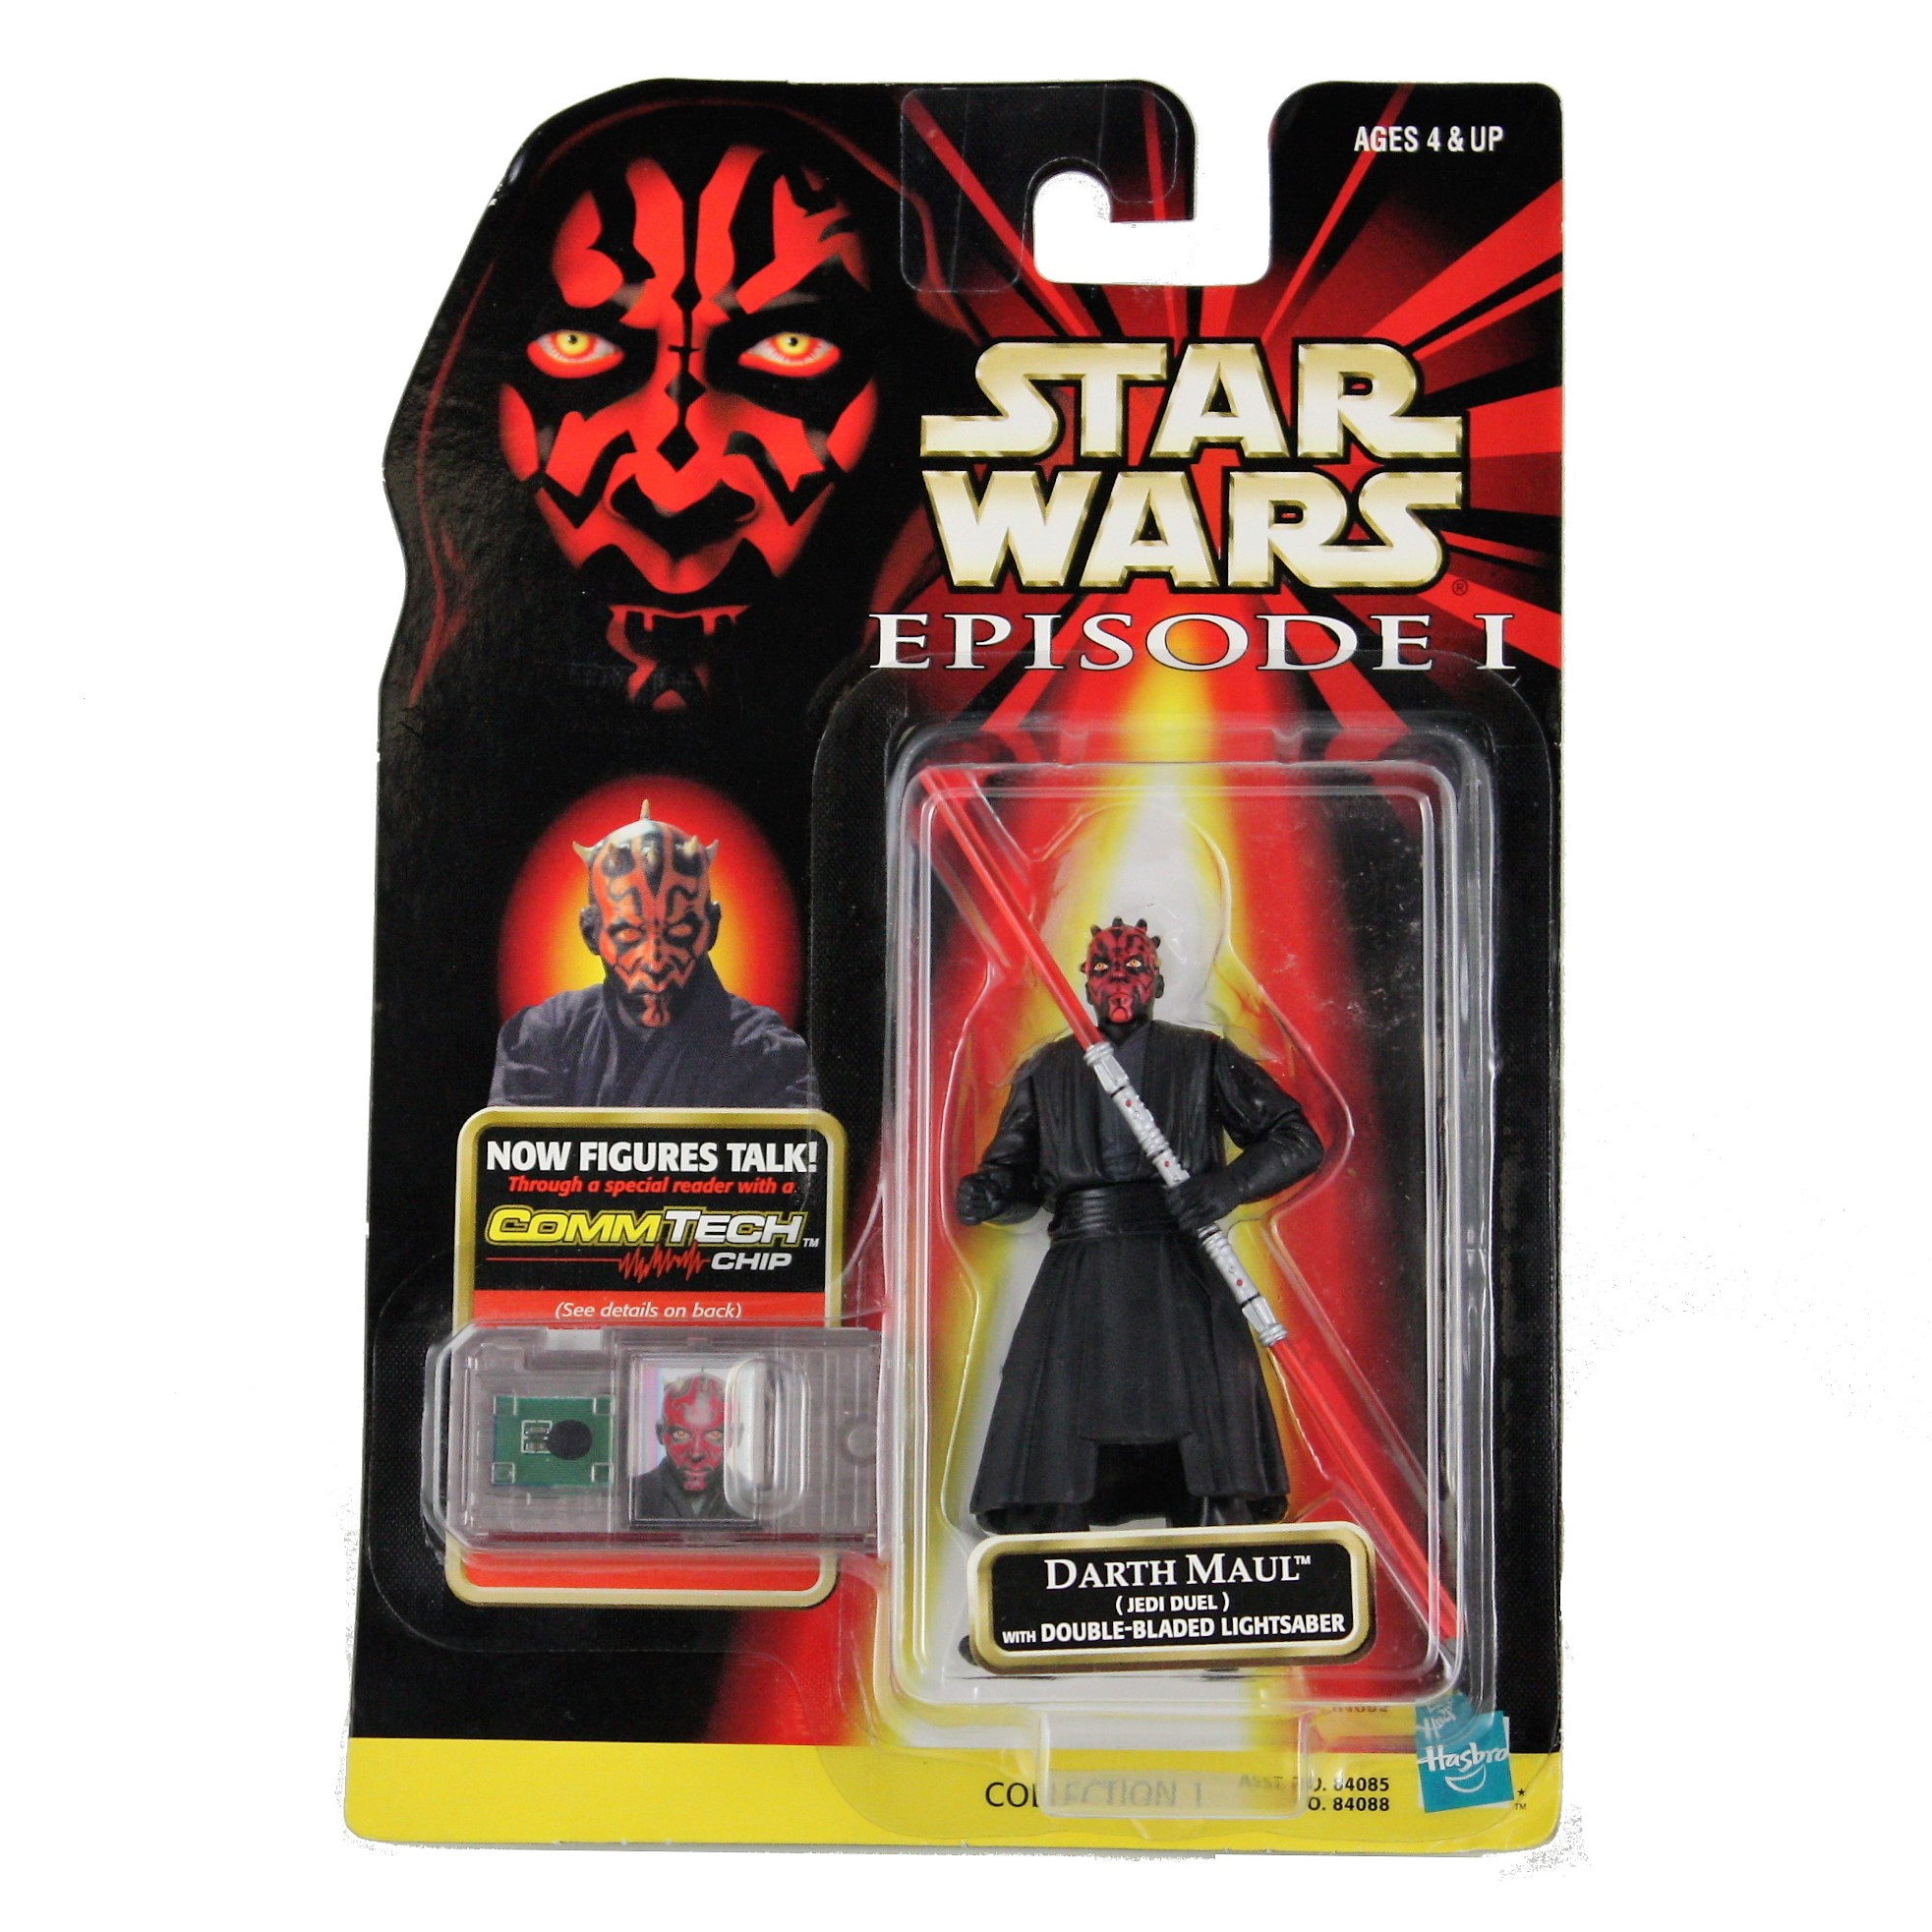 Image result for Darth Maul action figure